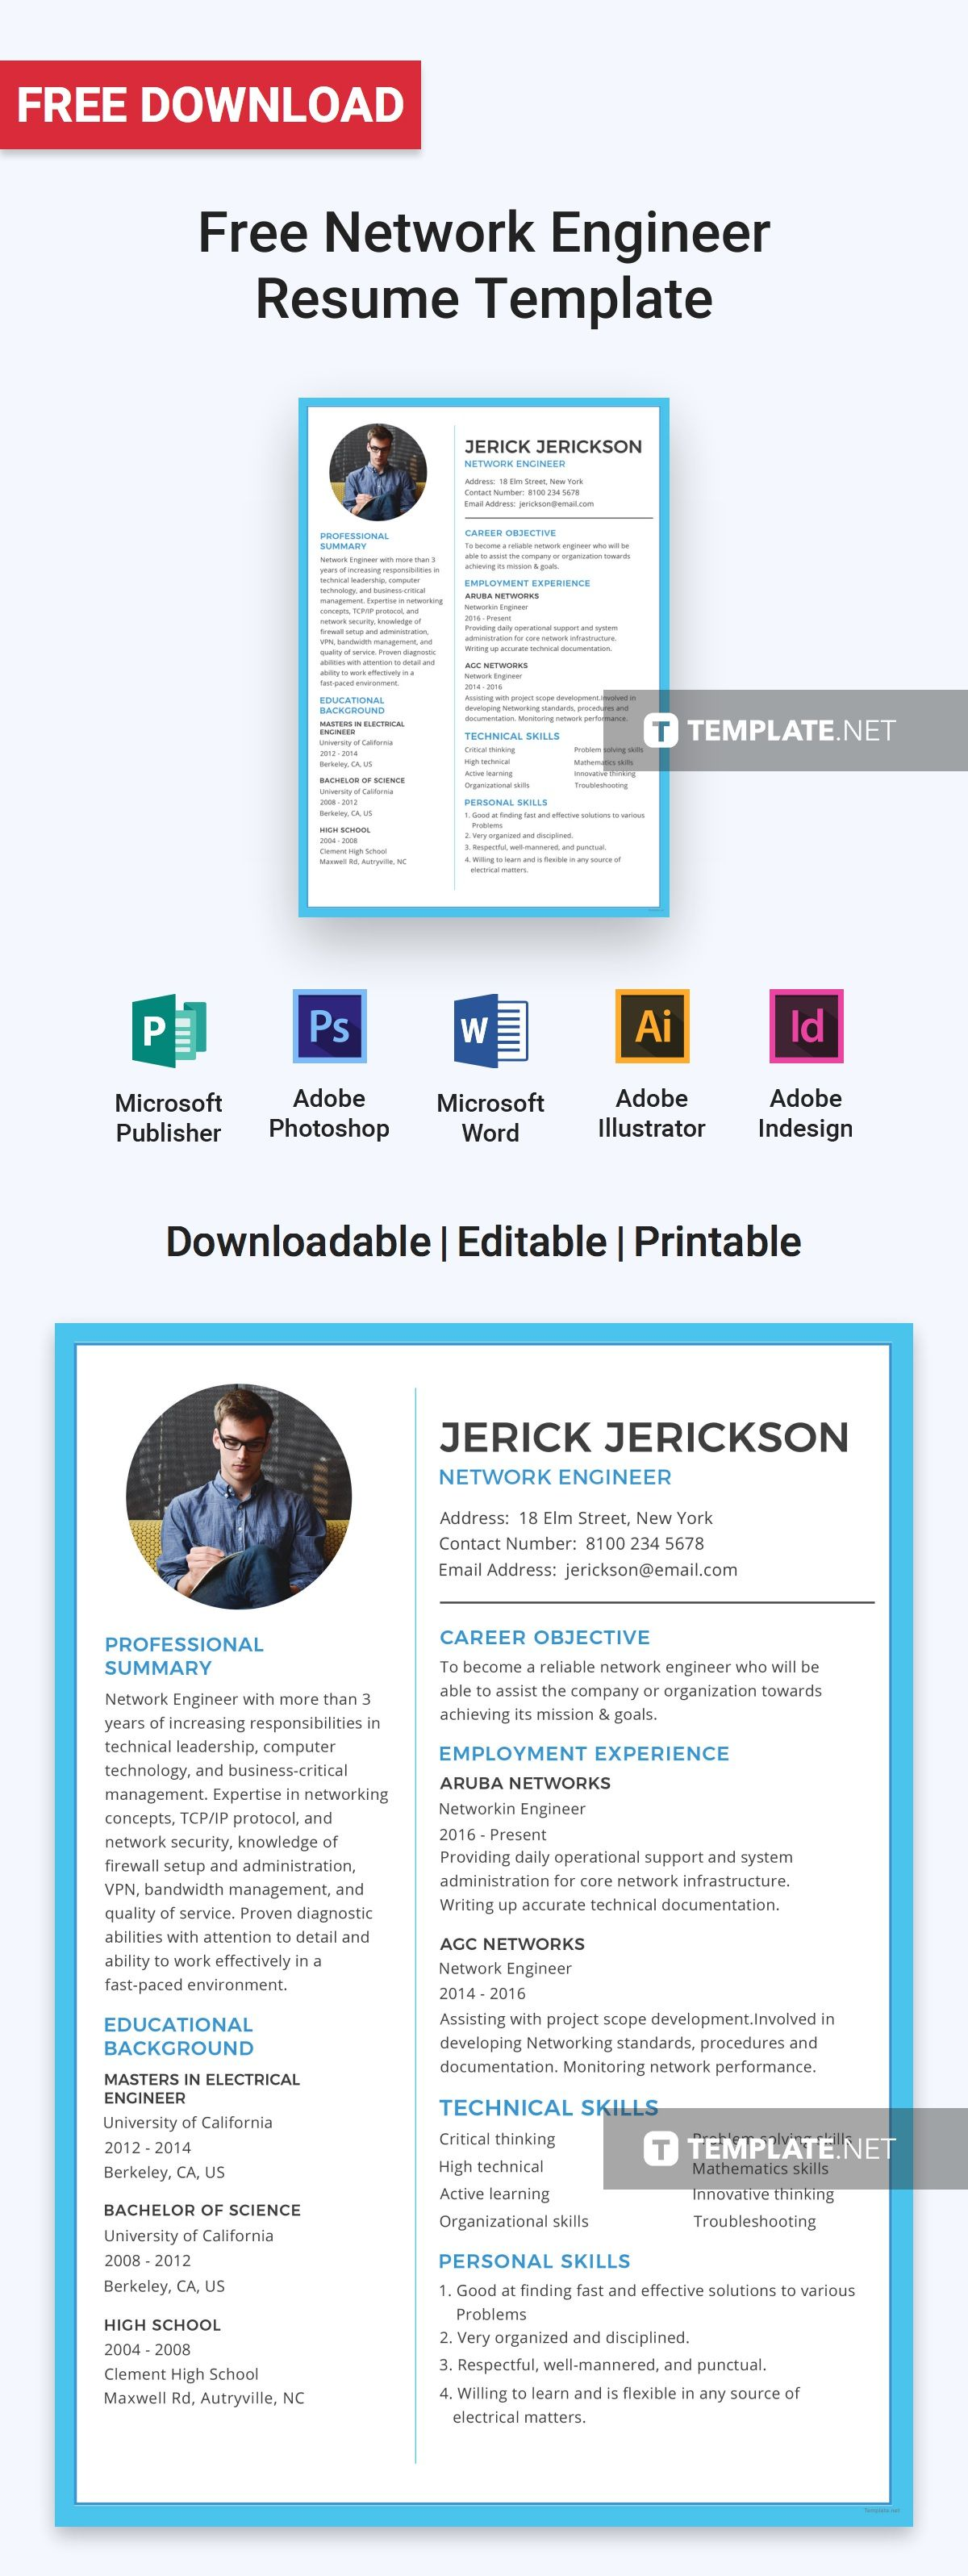 Free Basic Network Engineer Resume Cv Template Word Doc Psd Indesign Apple Mac Pages Illustrator Publisher Network Engineer Resume Design Template Resume